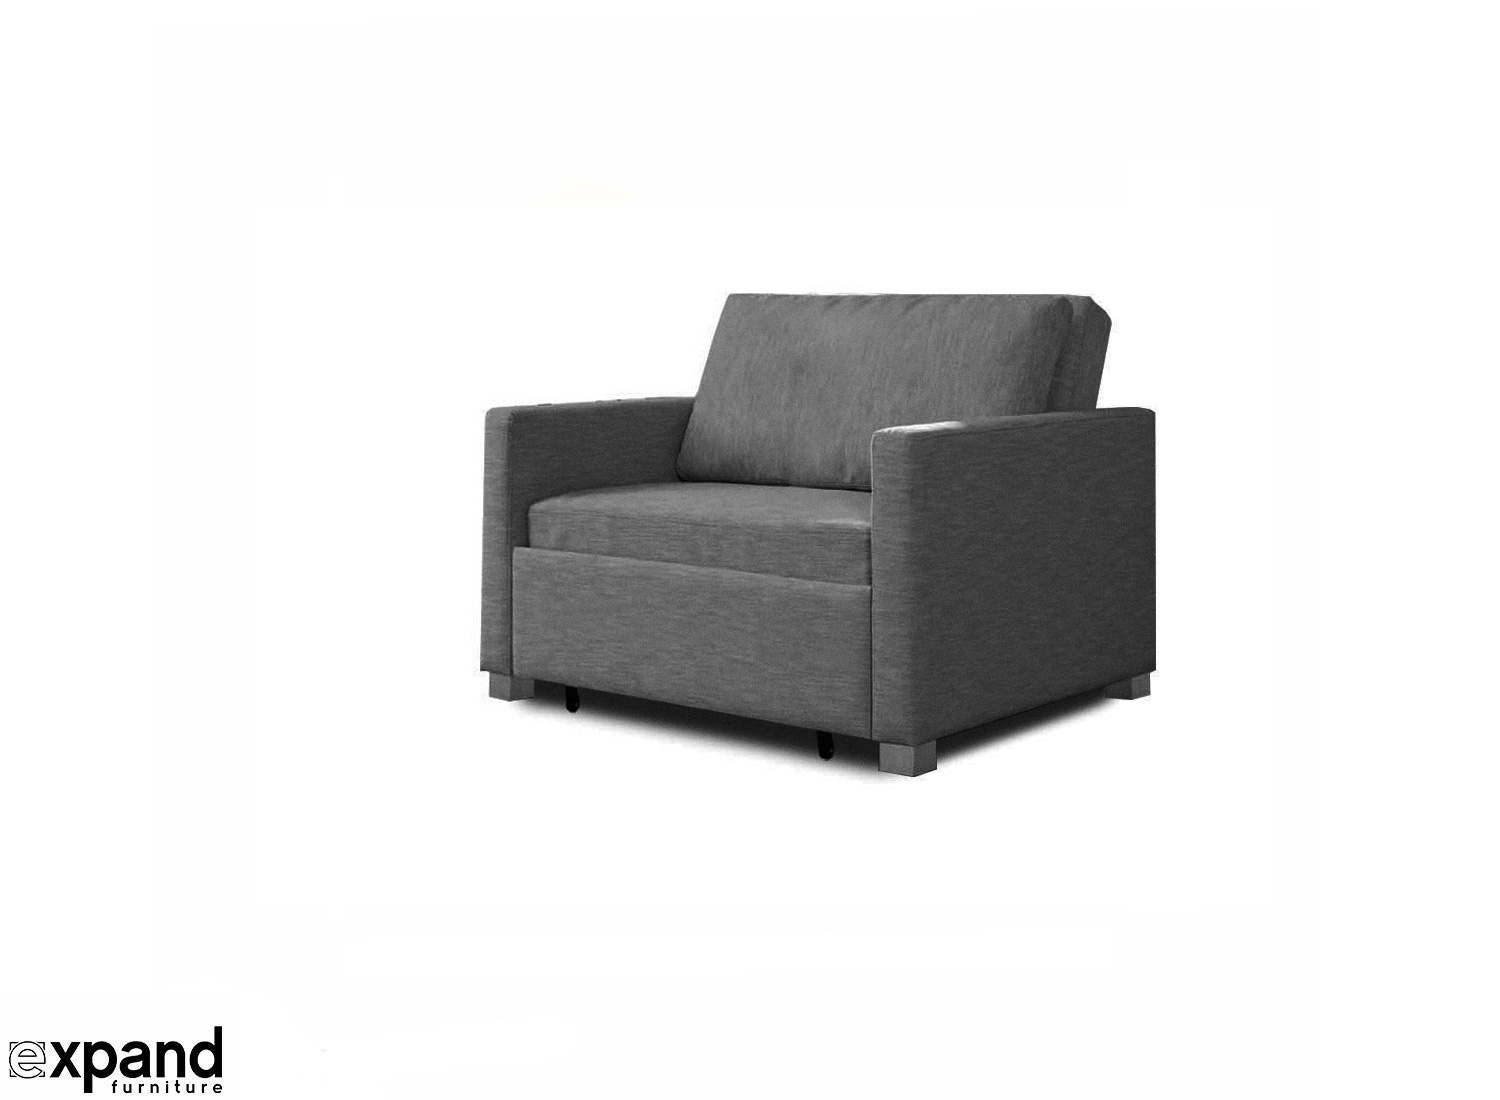 Harmony - Single Sofa Bed With Memory Foam | Expand Furniture in Single Sofas (Image 3 of 10)